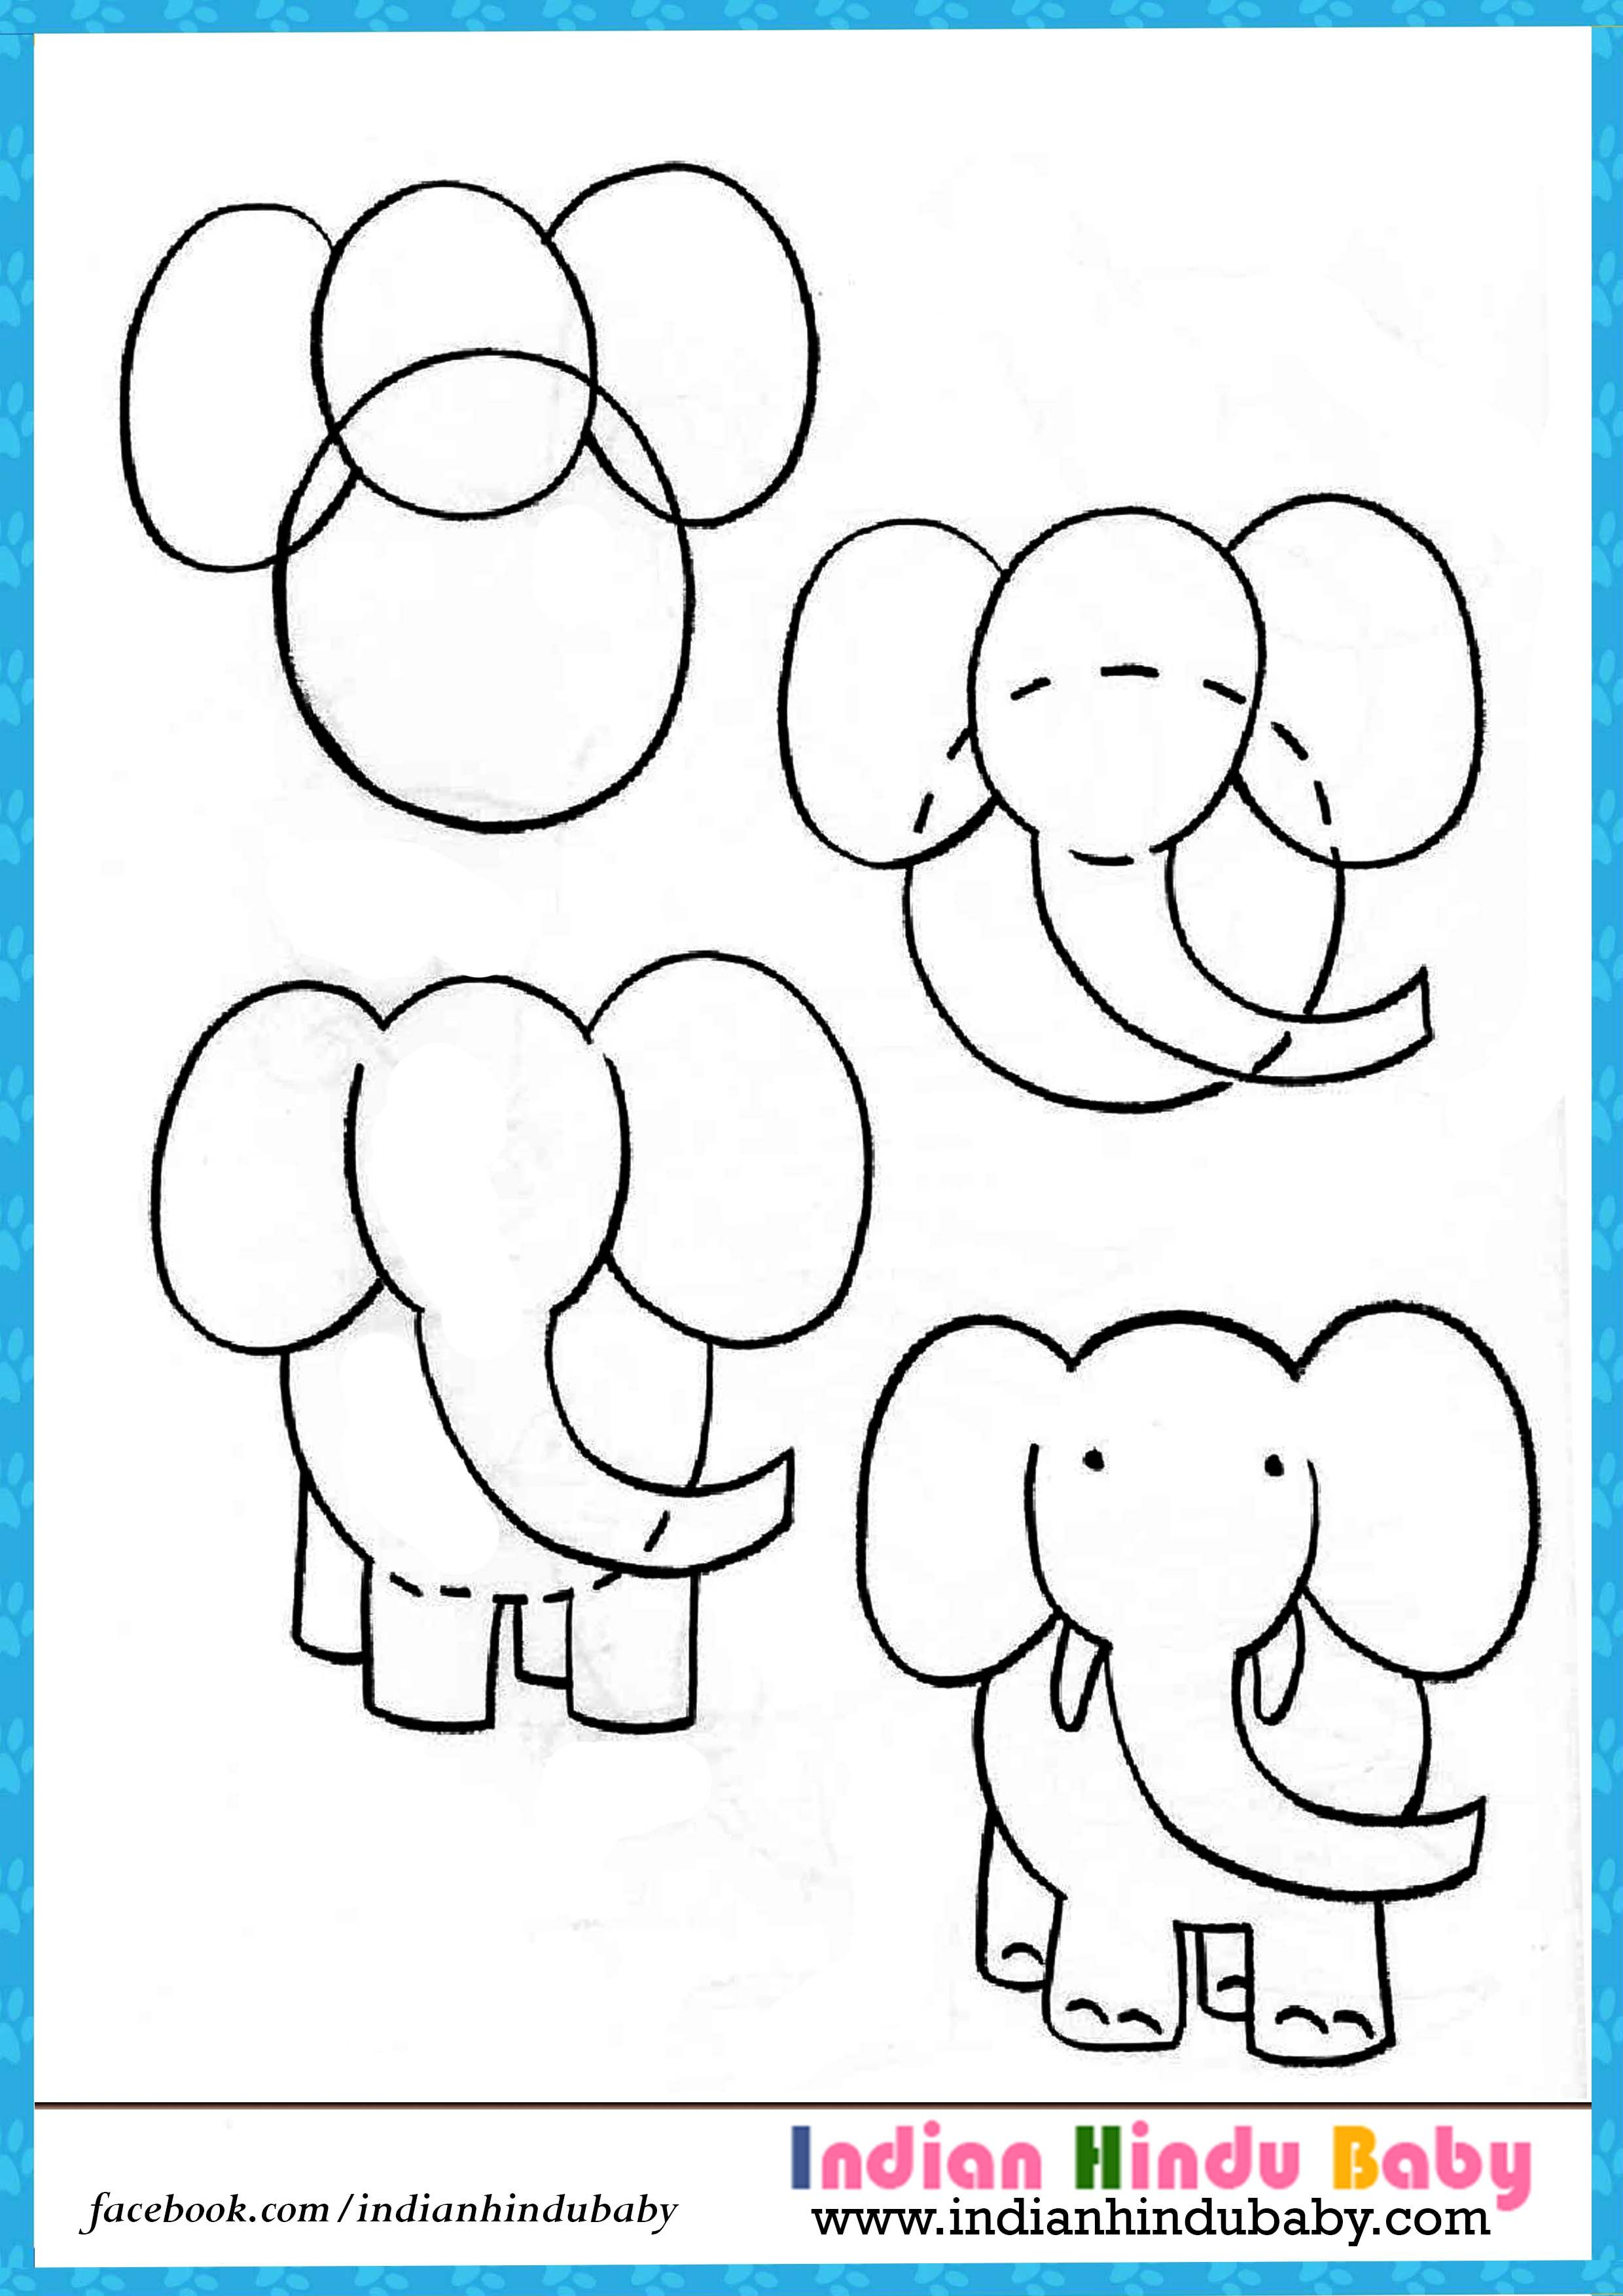 Pin by IndianHinduBaby on Drawing Tips for kids | Drawings ...